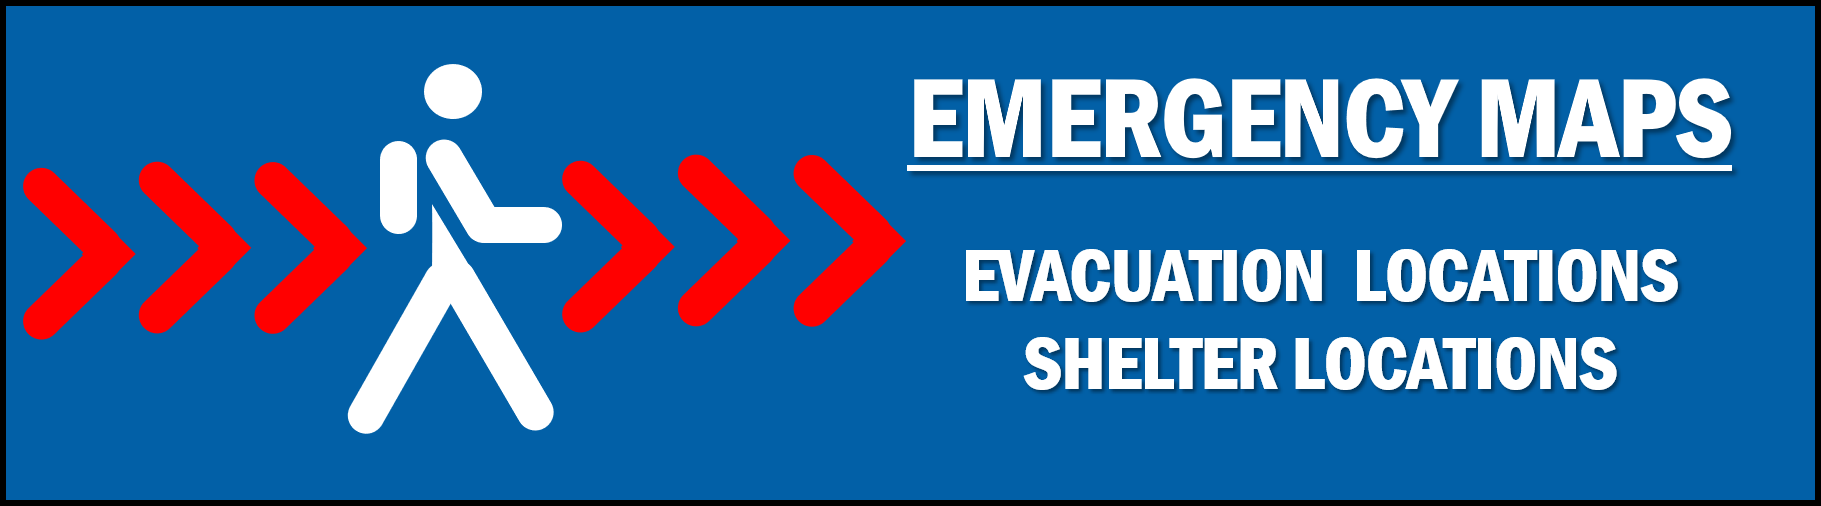 Emergency Maps